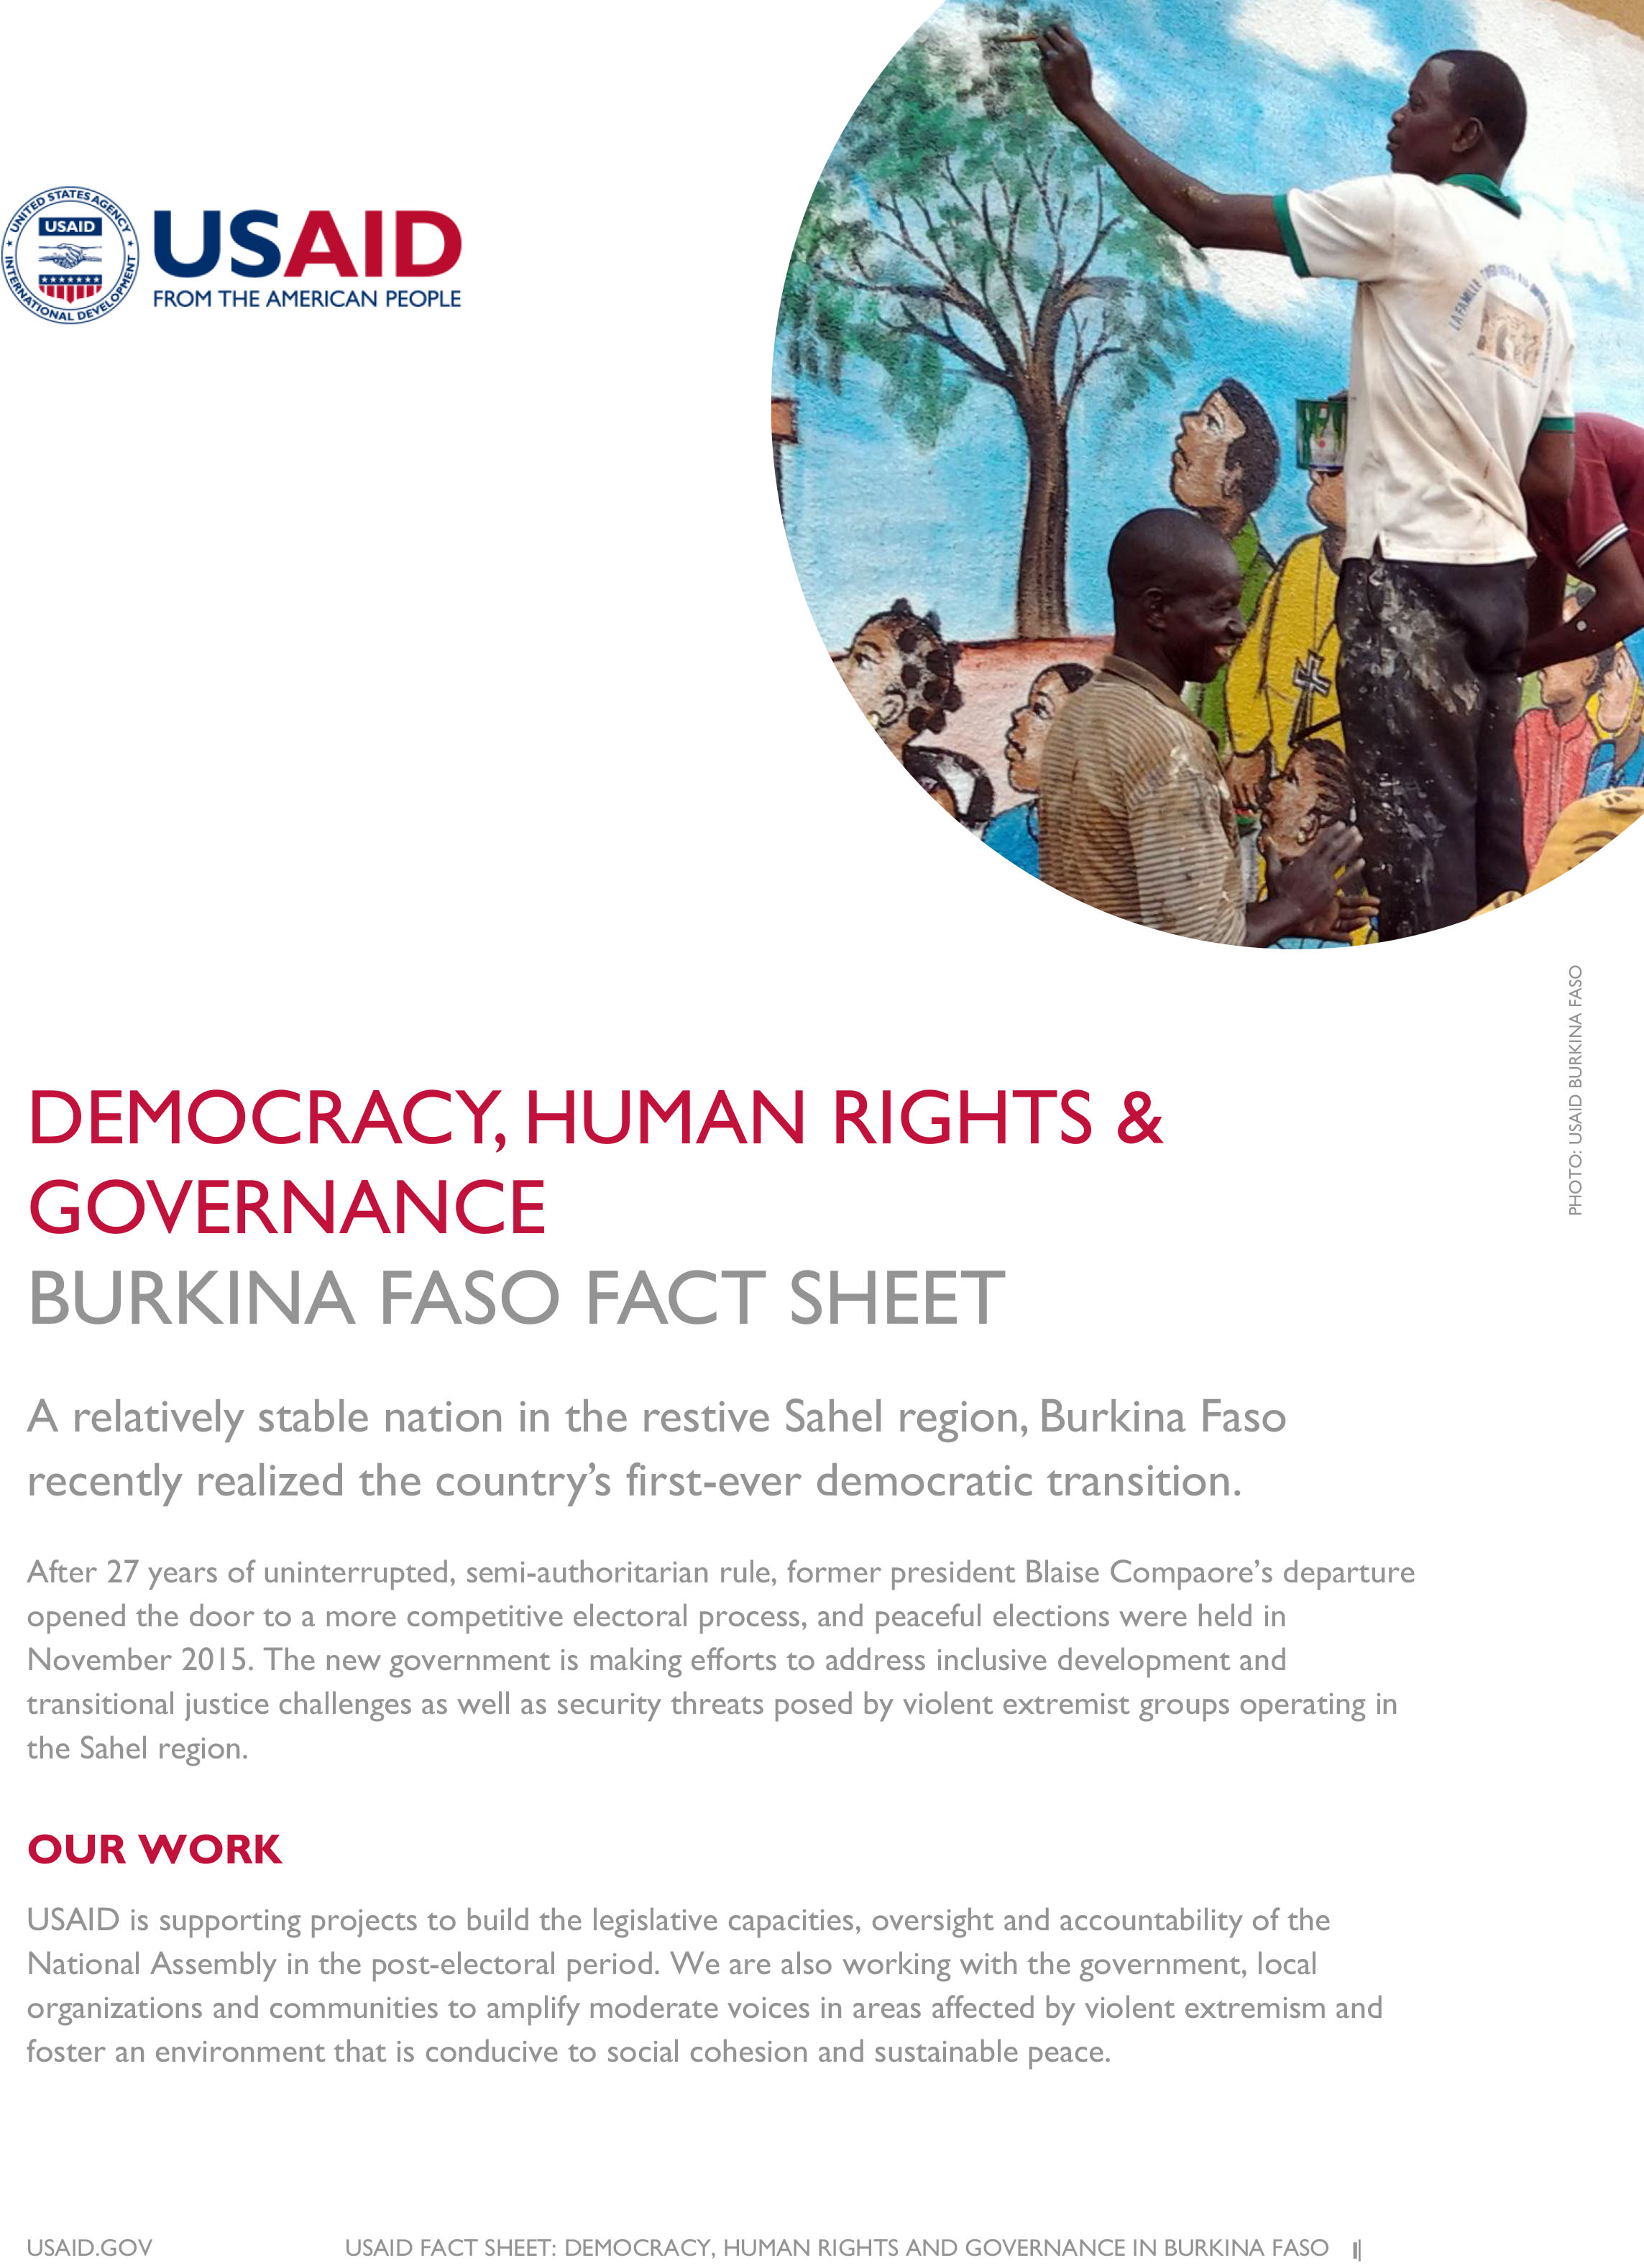 Burkina Faso Fact Sheet-Democracy, Human Rights & Governance